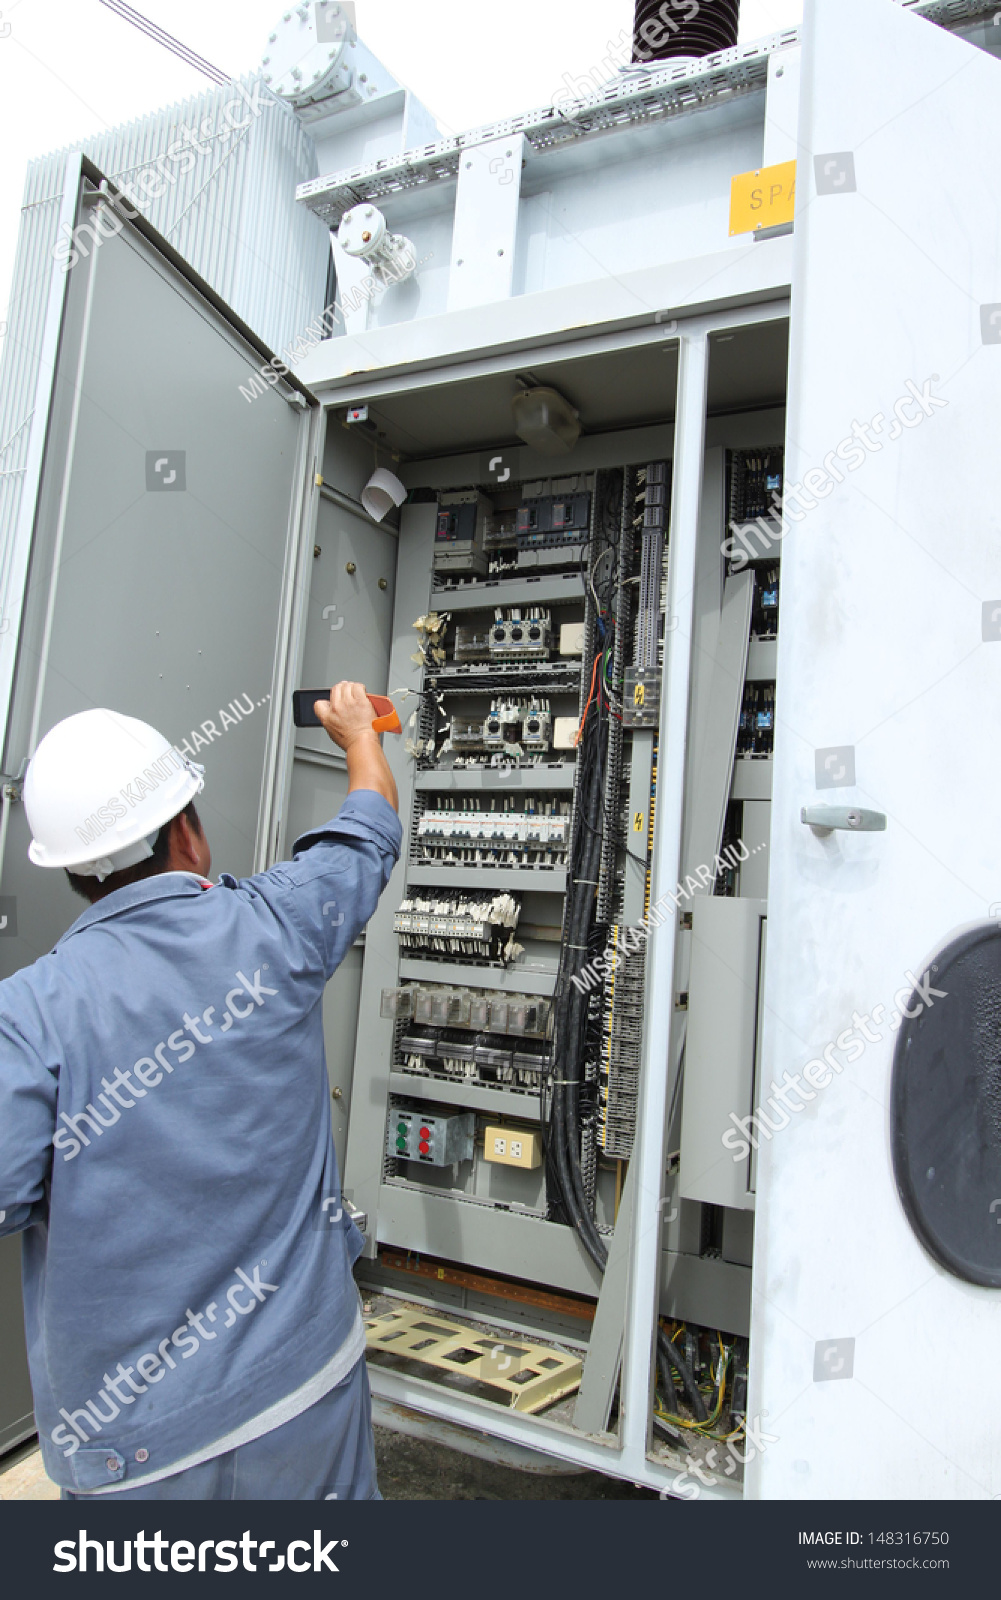 Examination And Measurement Of High Voltage Power Lines In The Wiring A Fuse Board Id 148316750